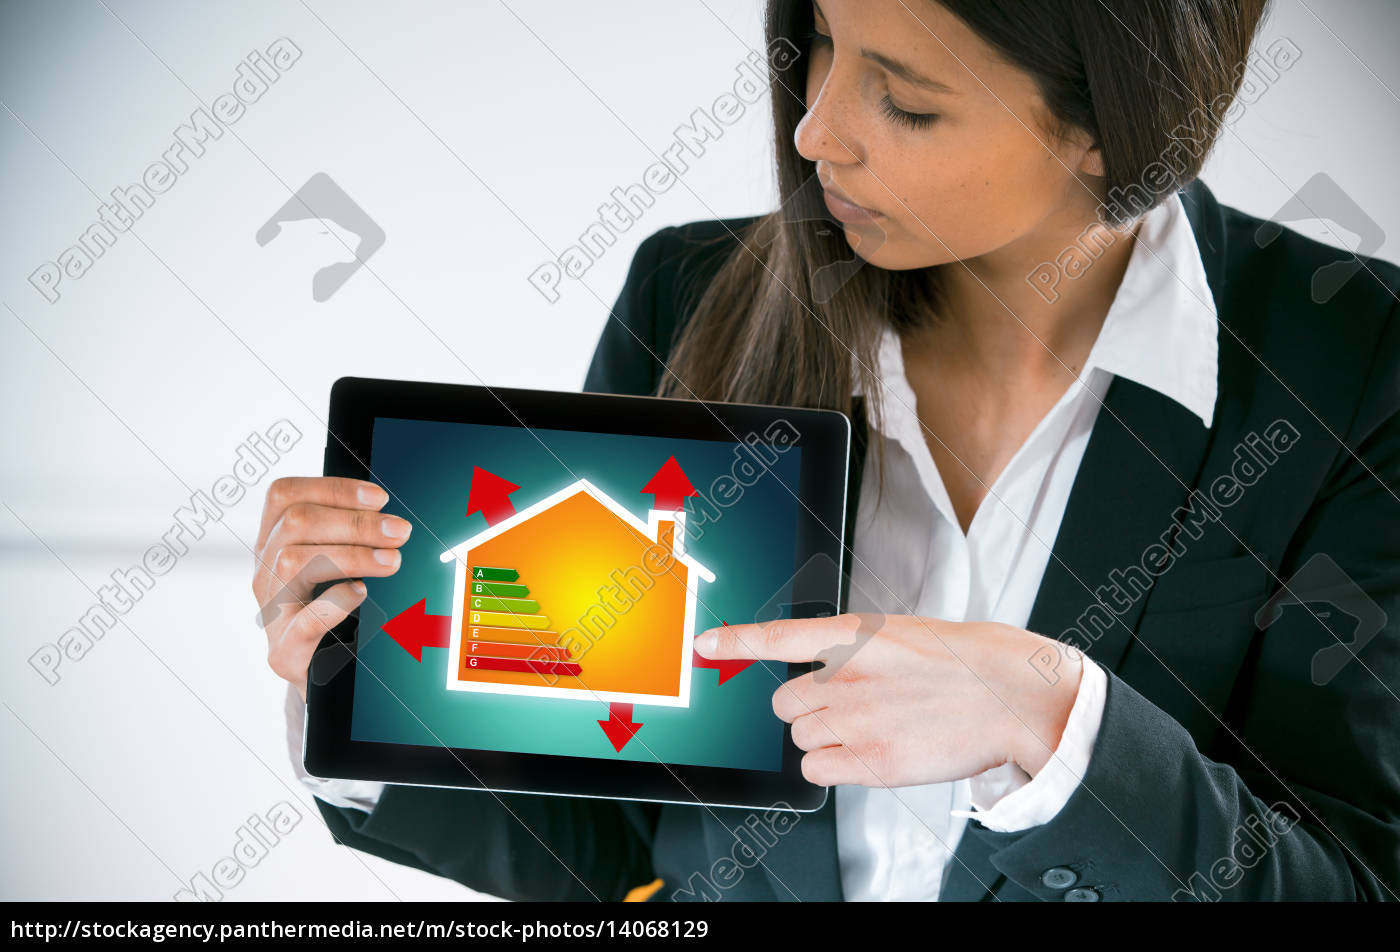 woman, house, building, office, indicate, show - 14068129